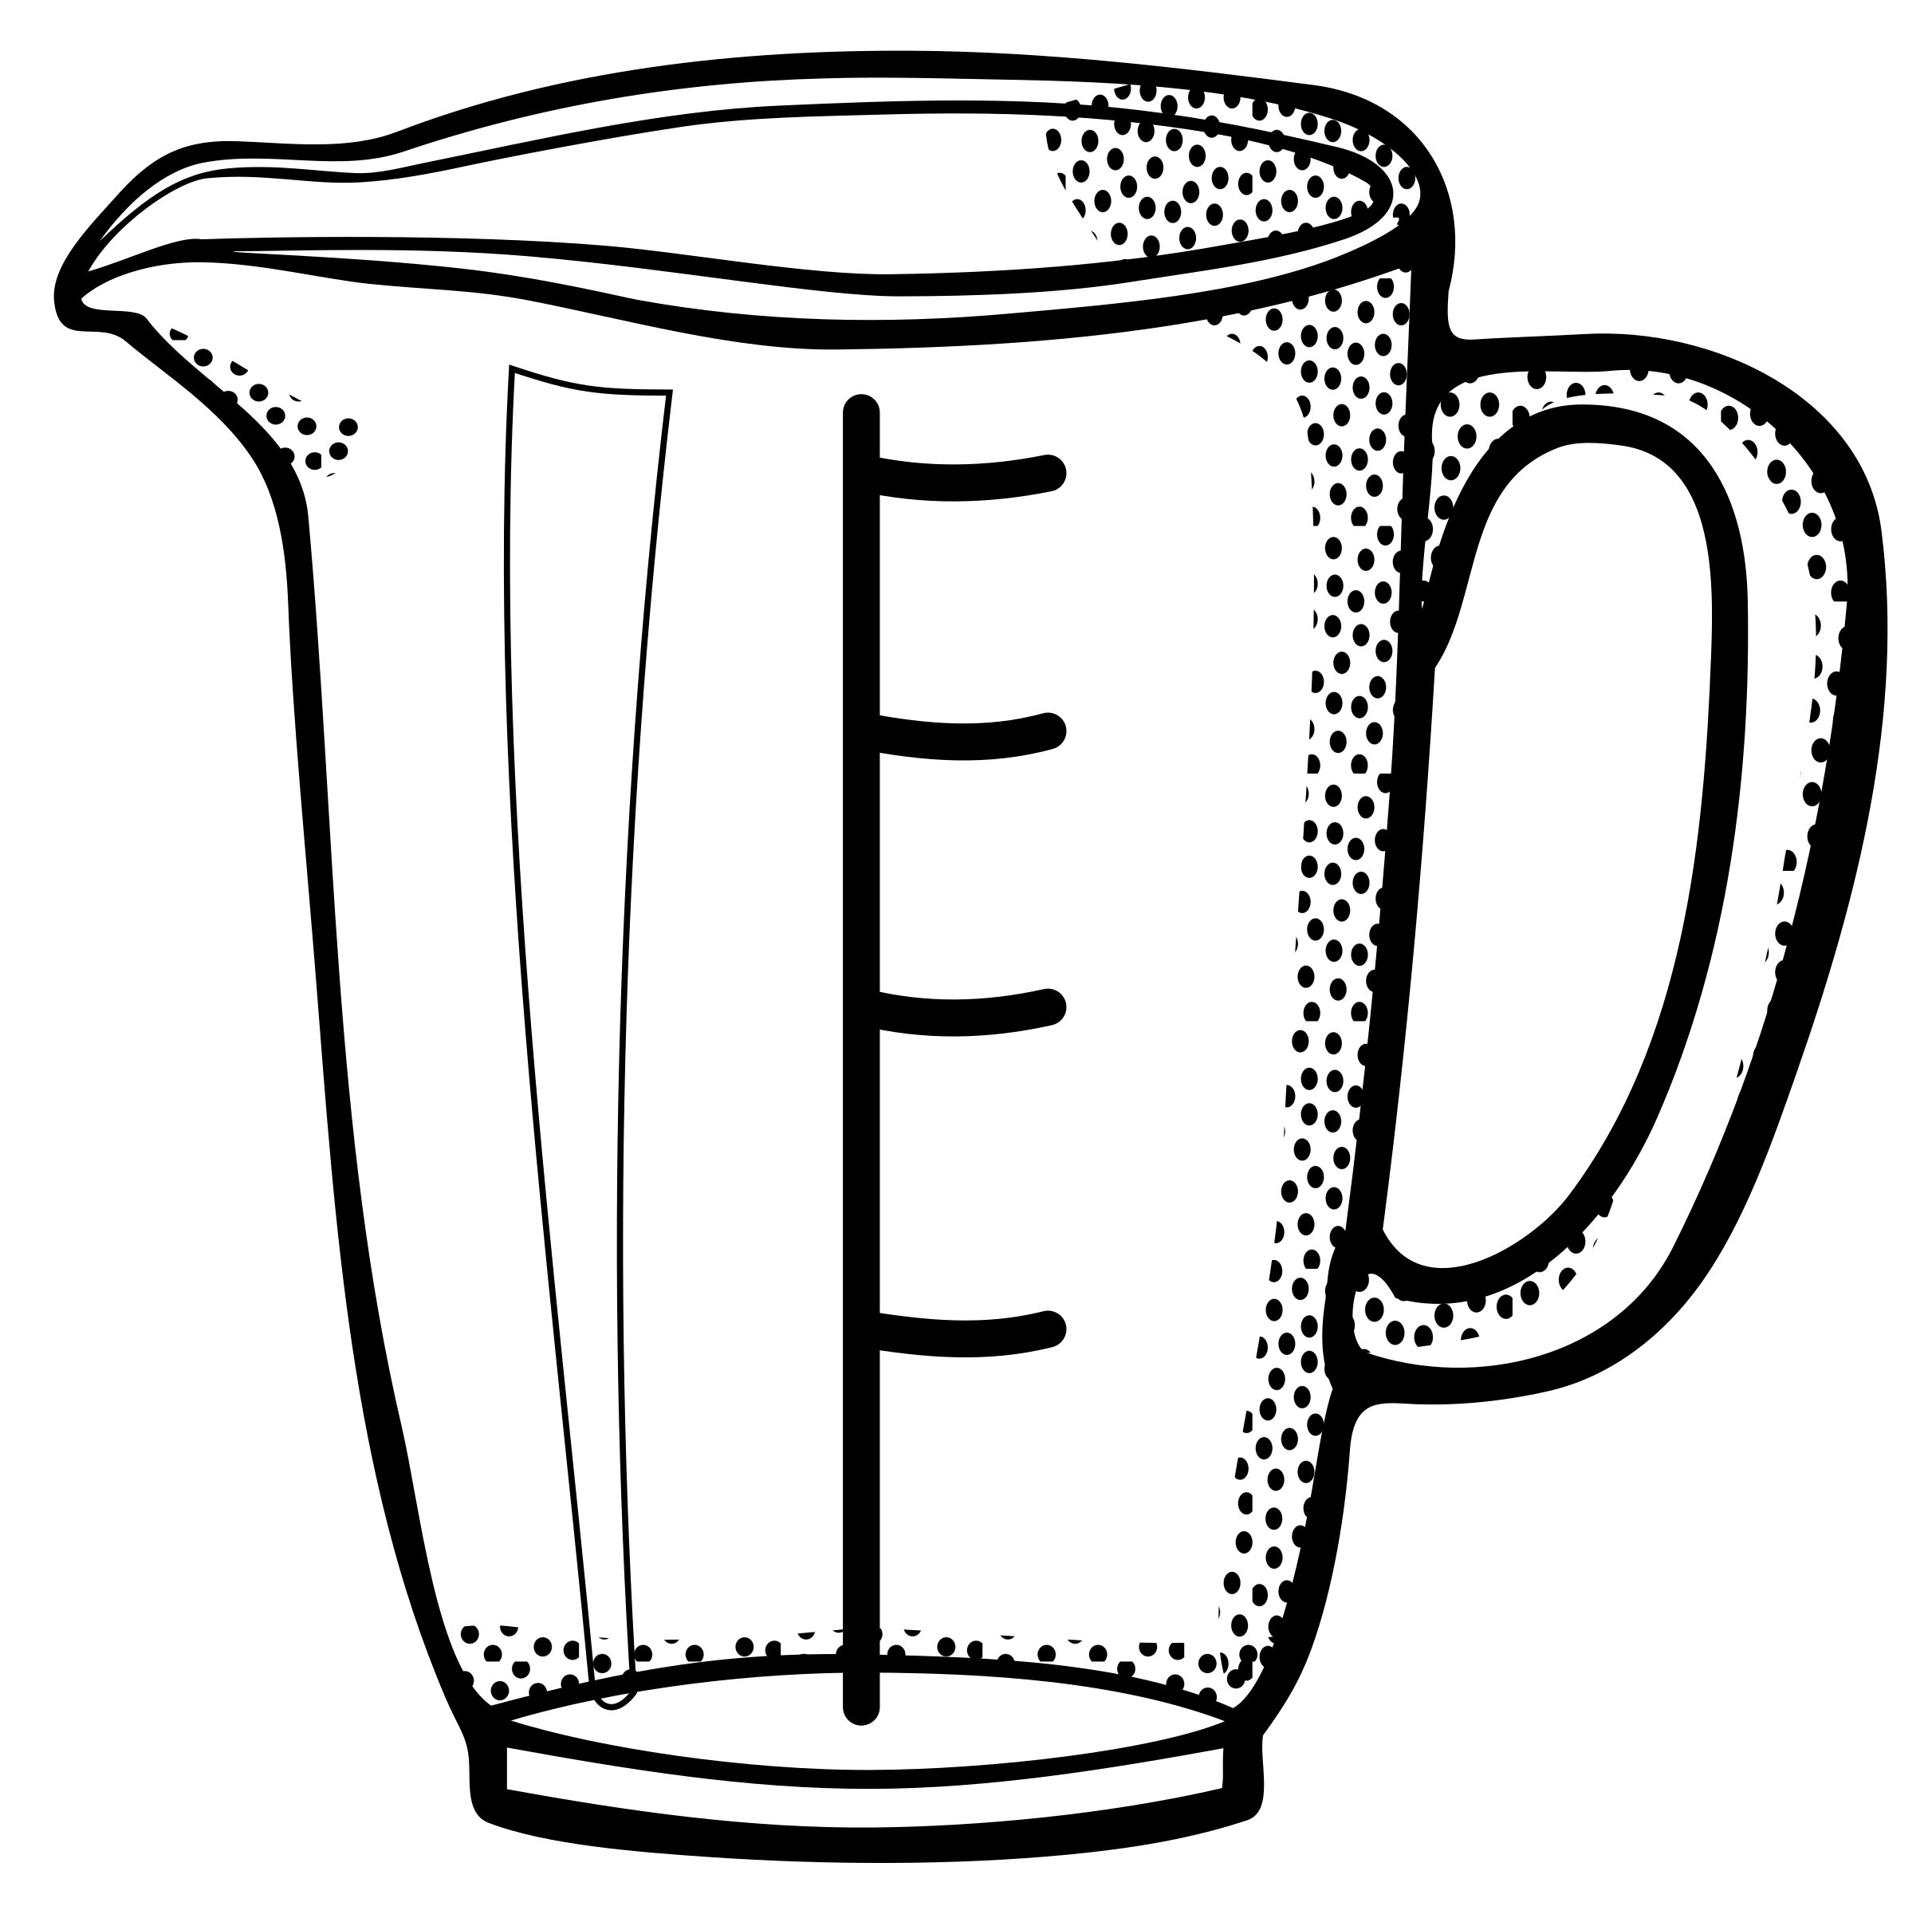 Cups clipart measuring. Cup lineart big image